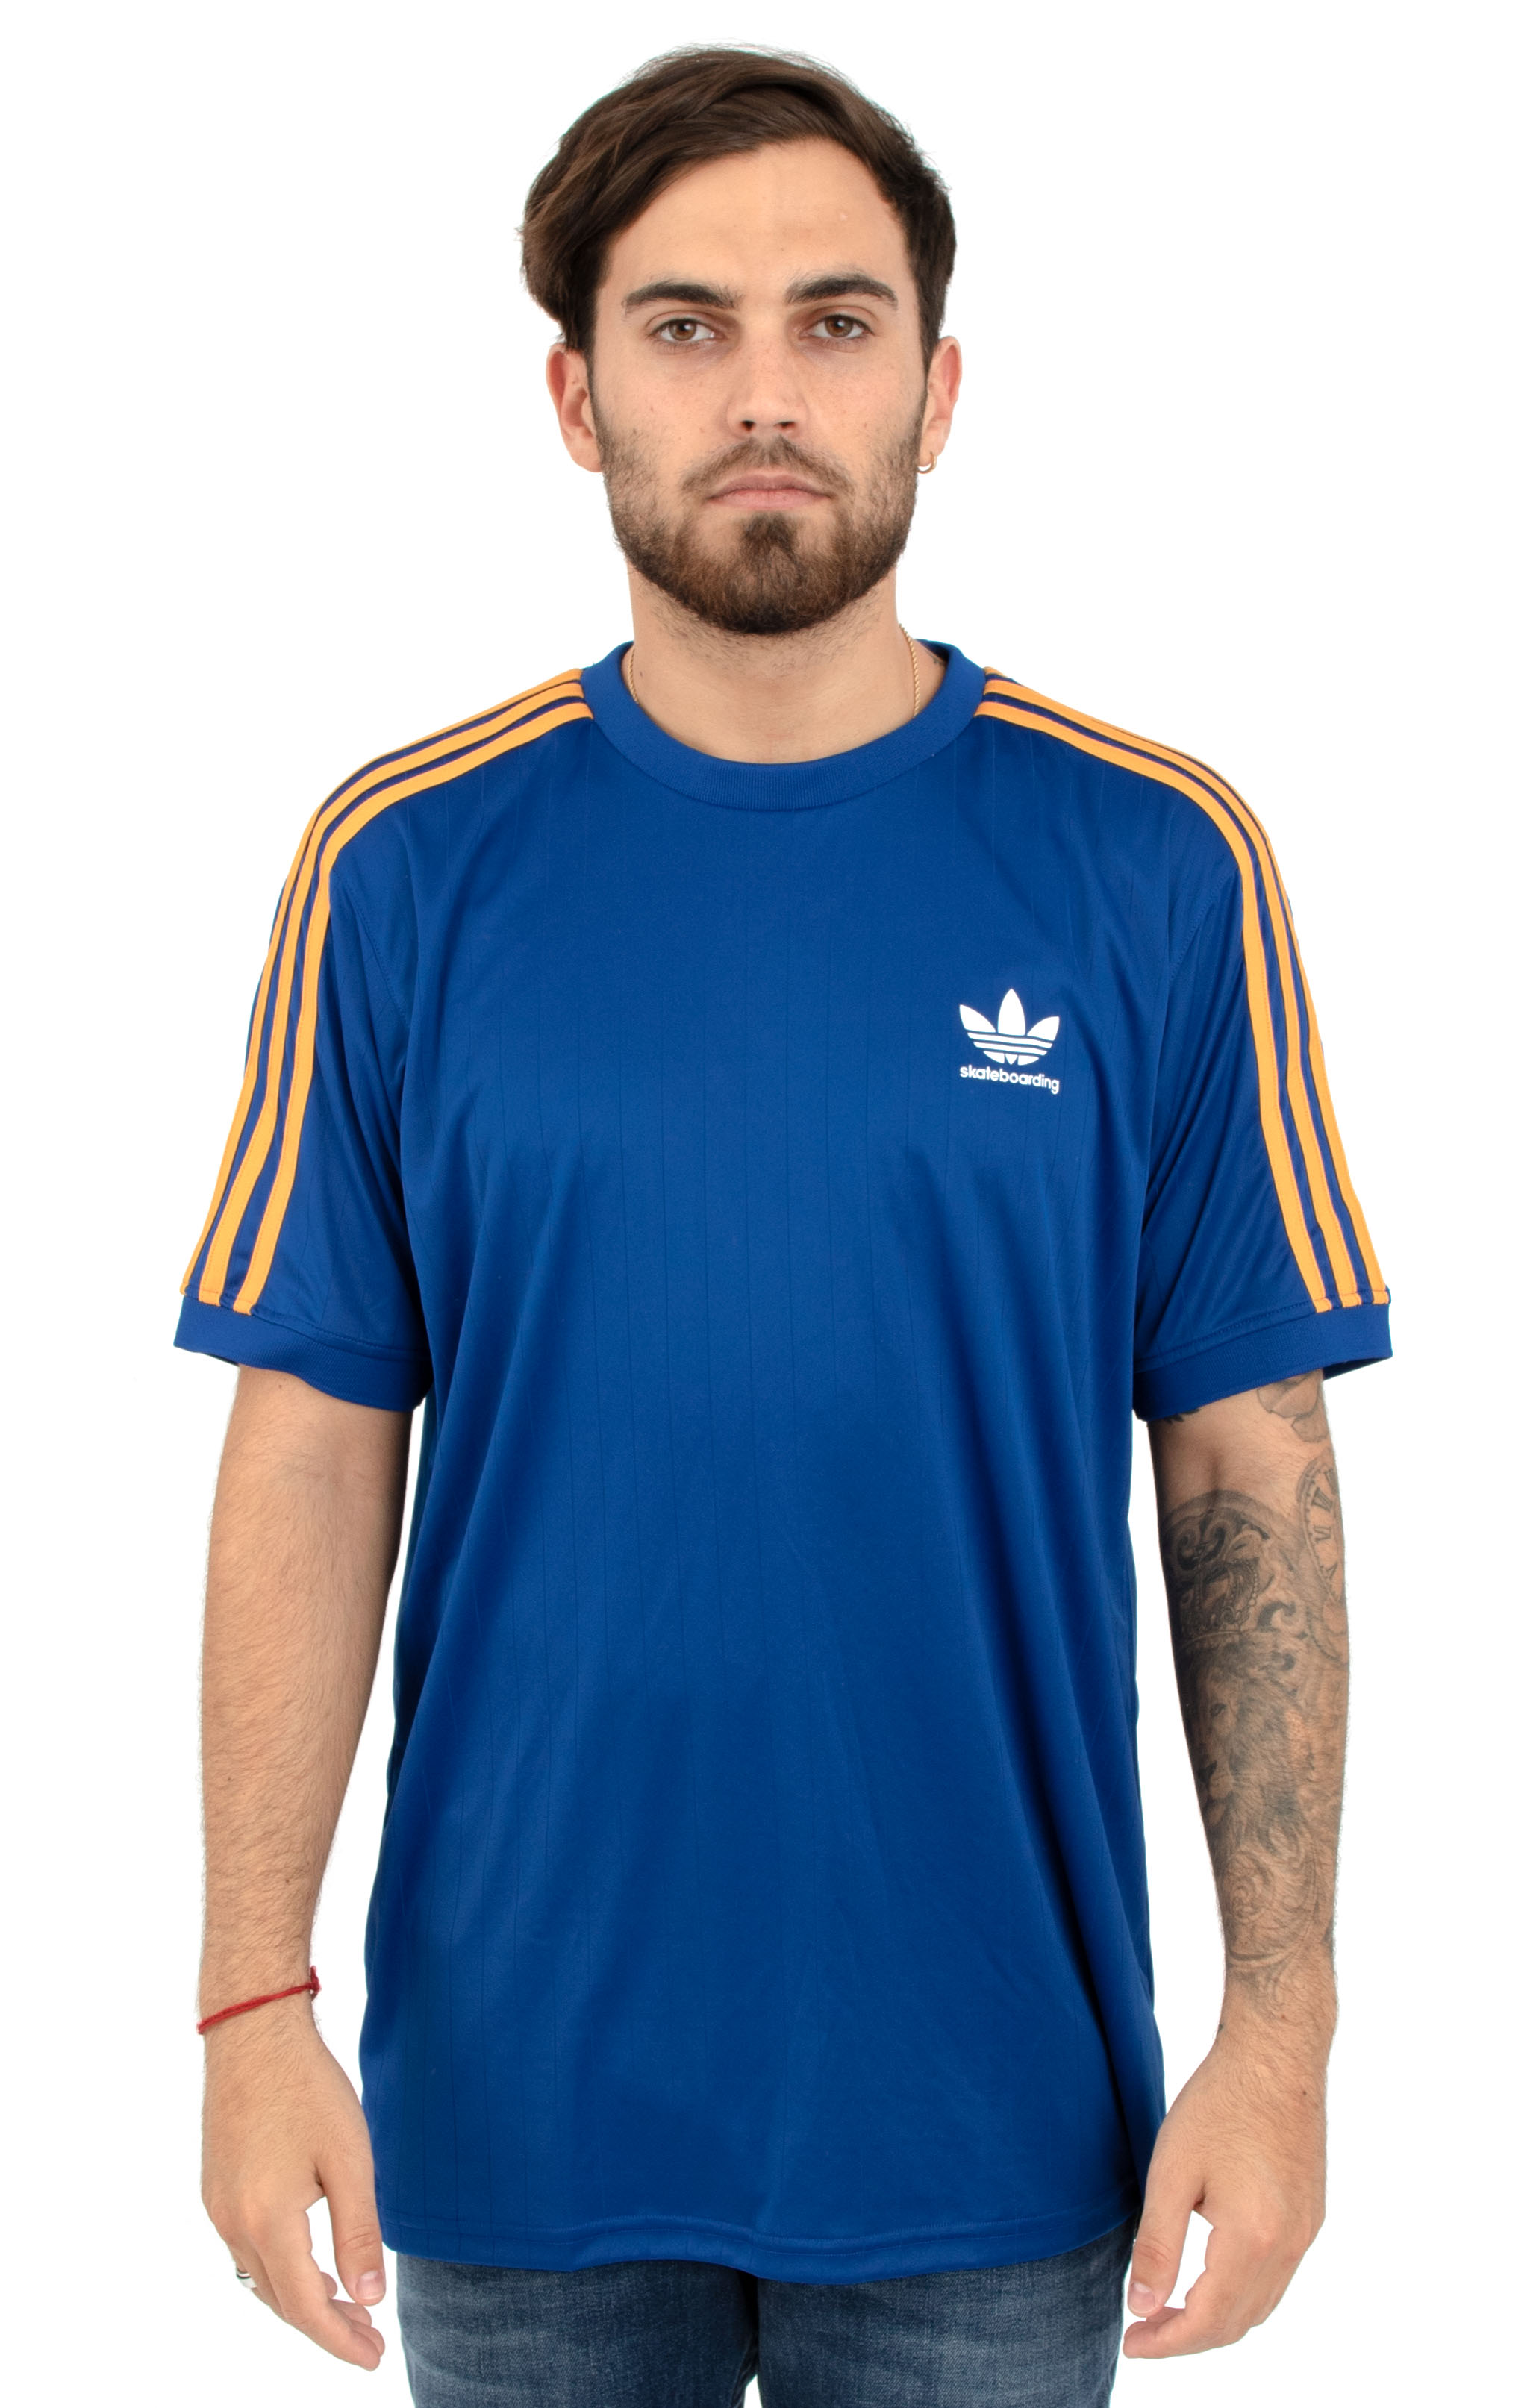 Adidas, Clima Club Jersey - Collegiate Royal/Tactile Yellow